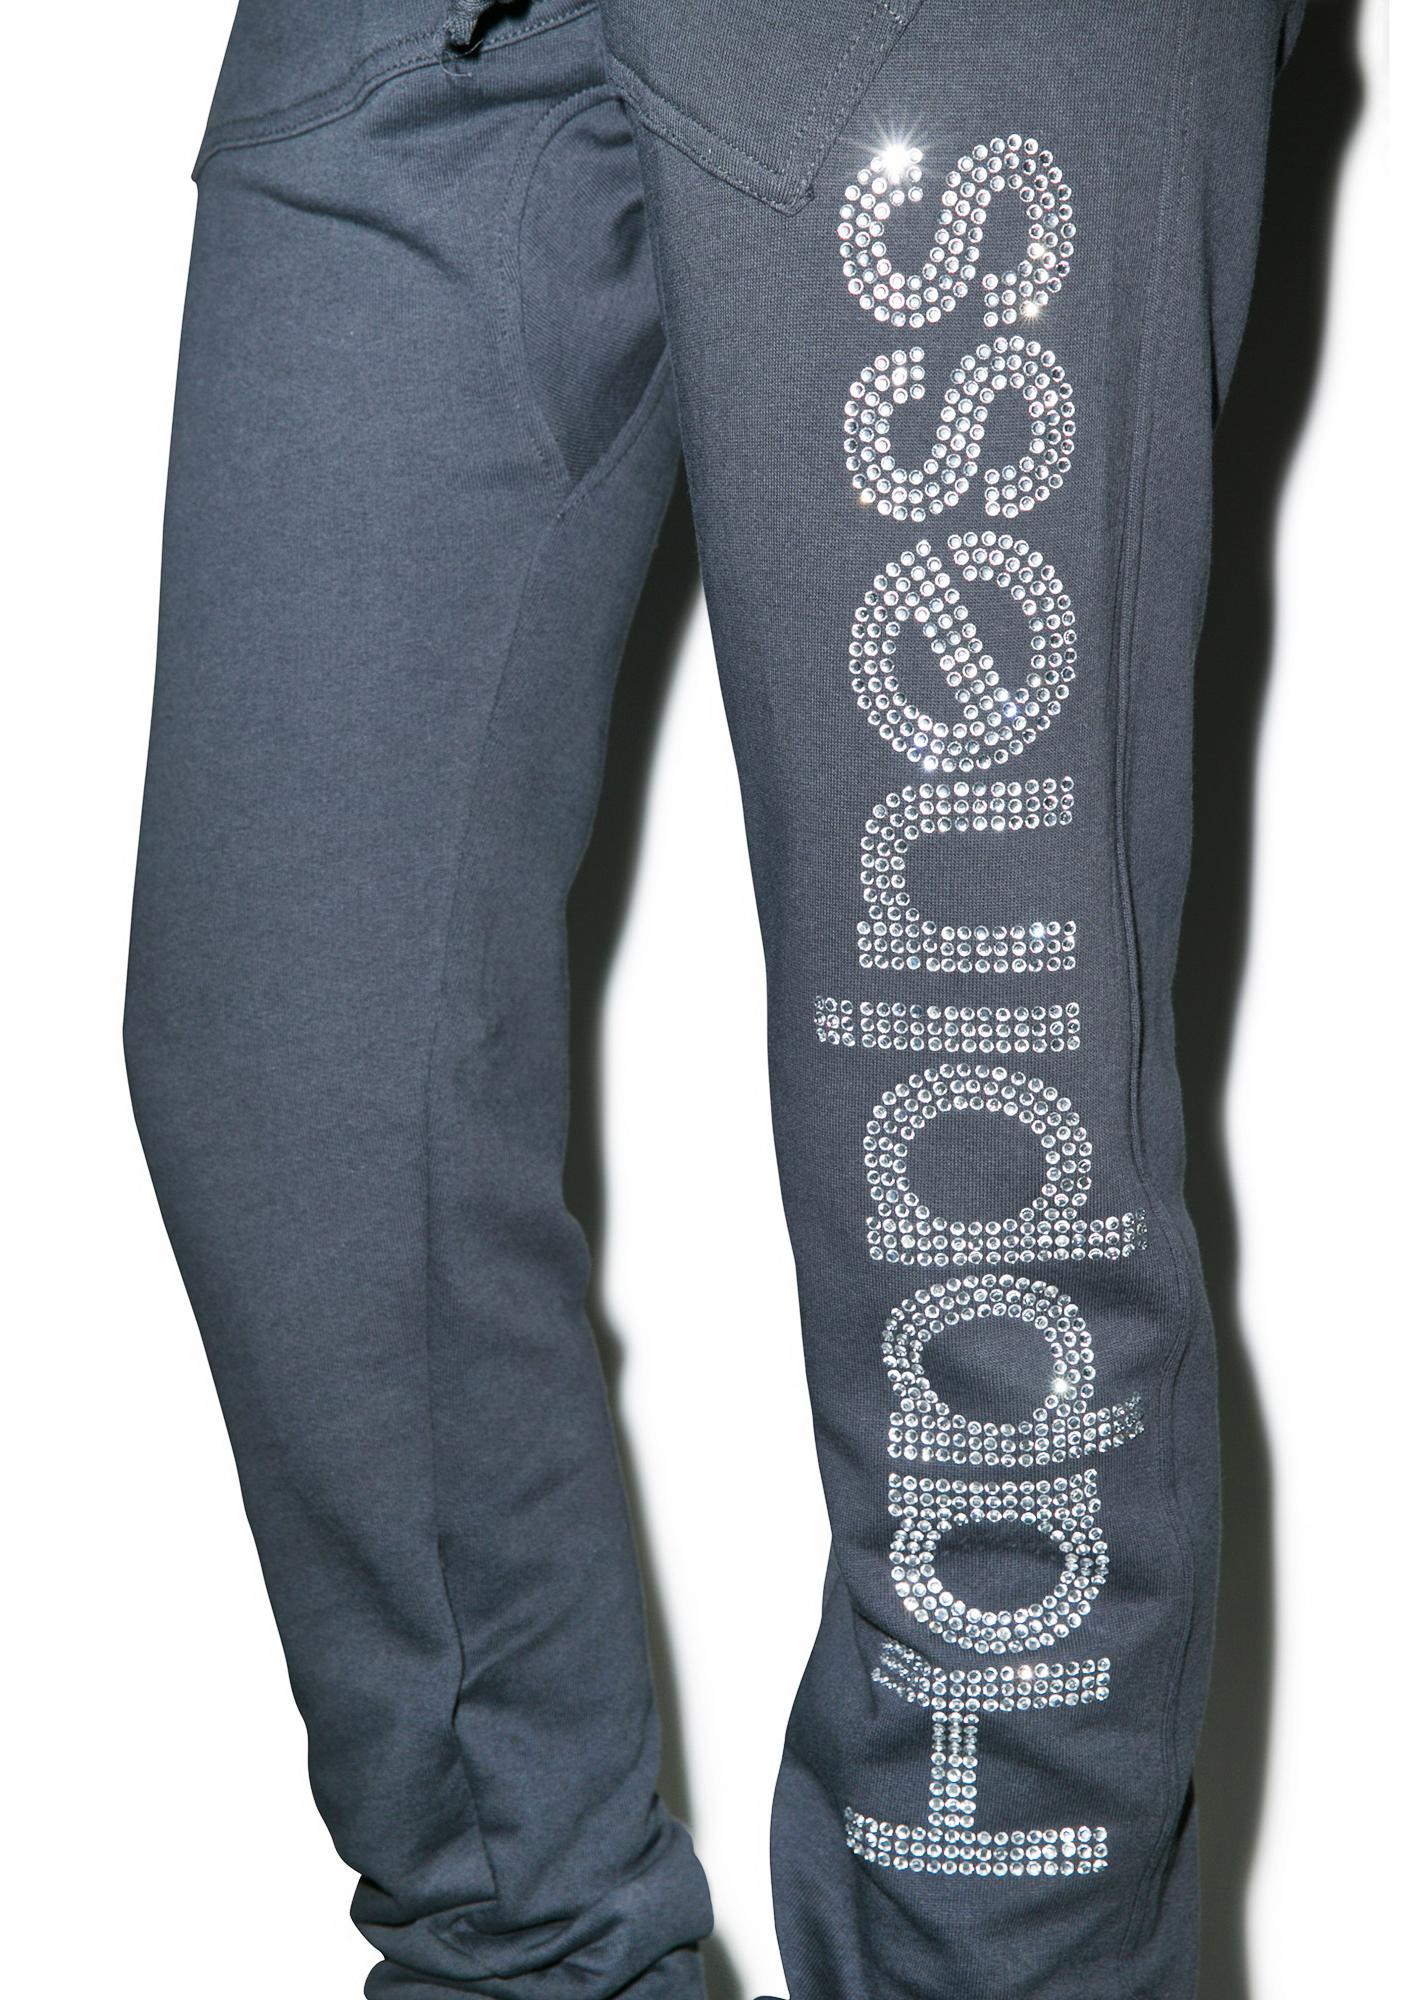 Happiness Bling Happiness Sweatpants